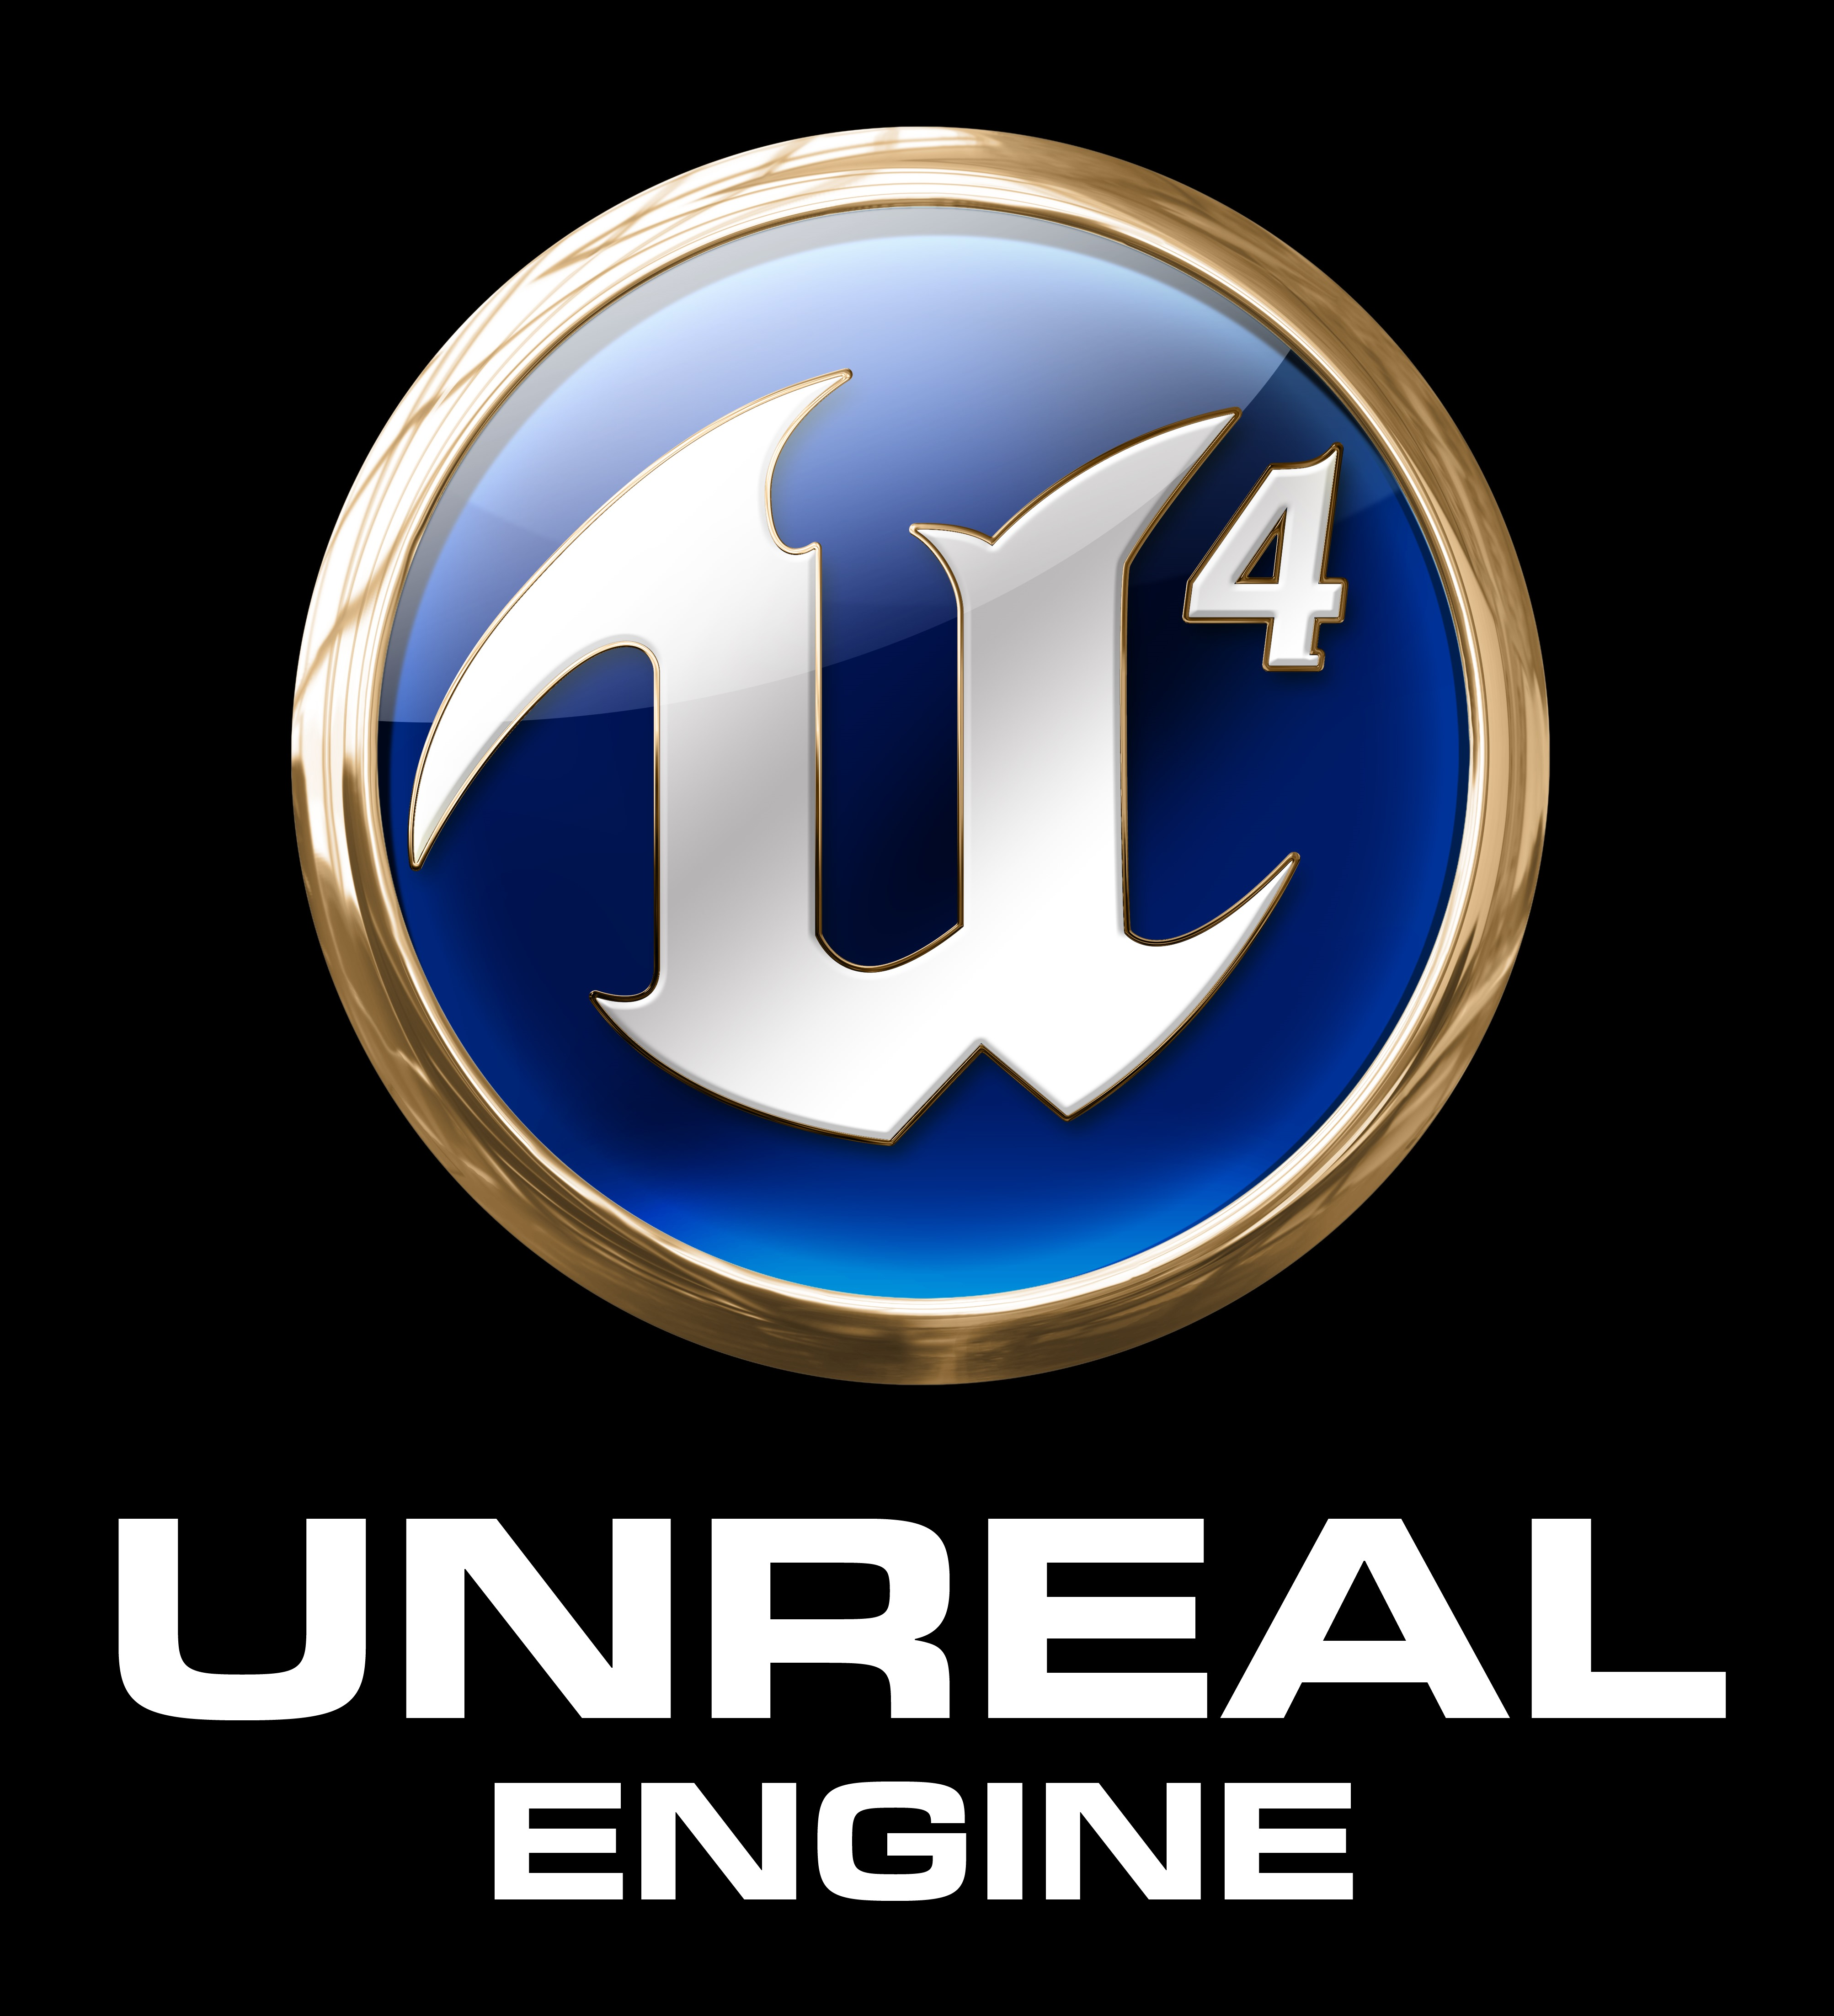 [For Developers] Massive Unreal Engine 4.4 Update Released